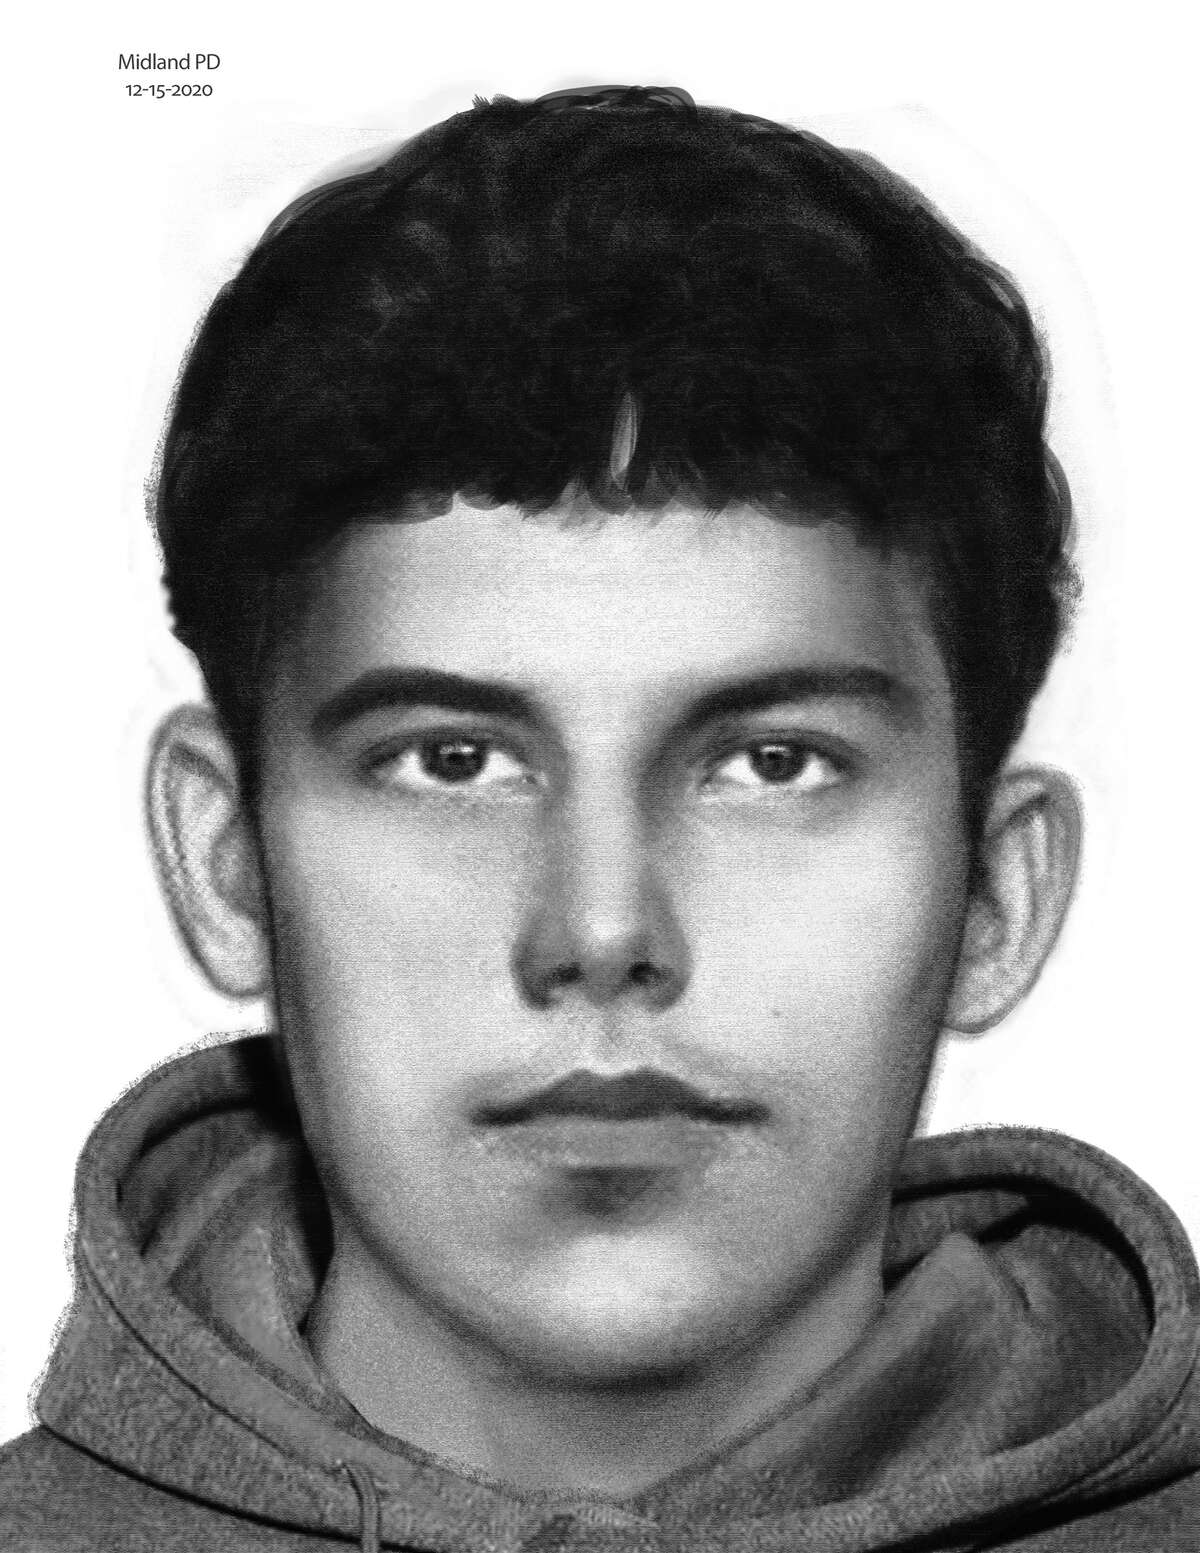 The Midland Police Department released the sketch above of a suspect involved in the shooting death of a 20-year-old man, according to a press release from the city's spokeswoman.